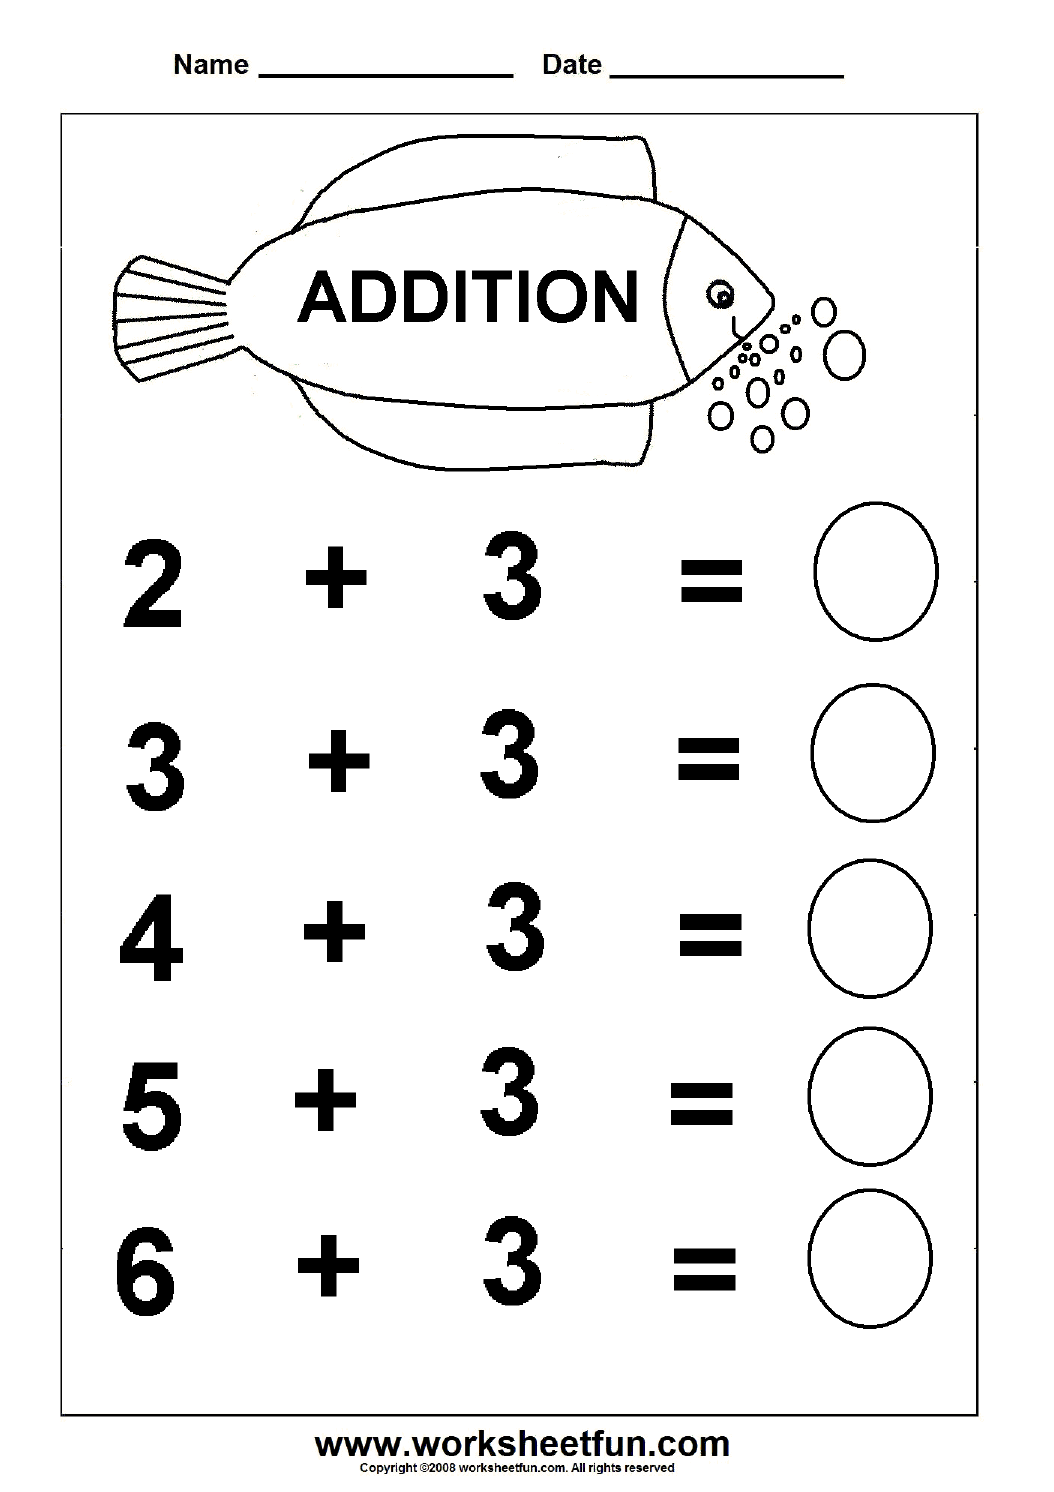 Addition Worksheets Elementary The Best Worksheets Image